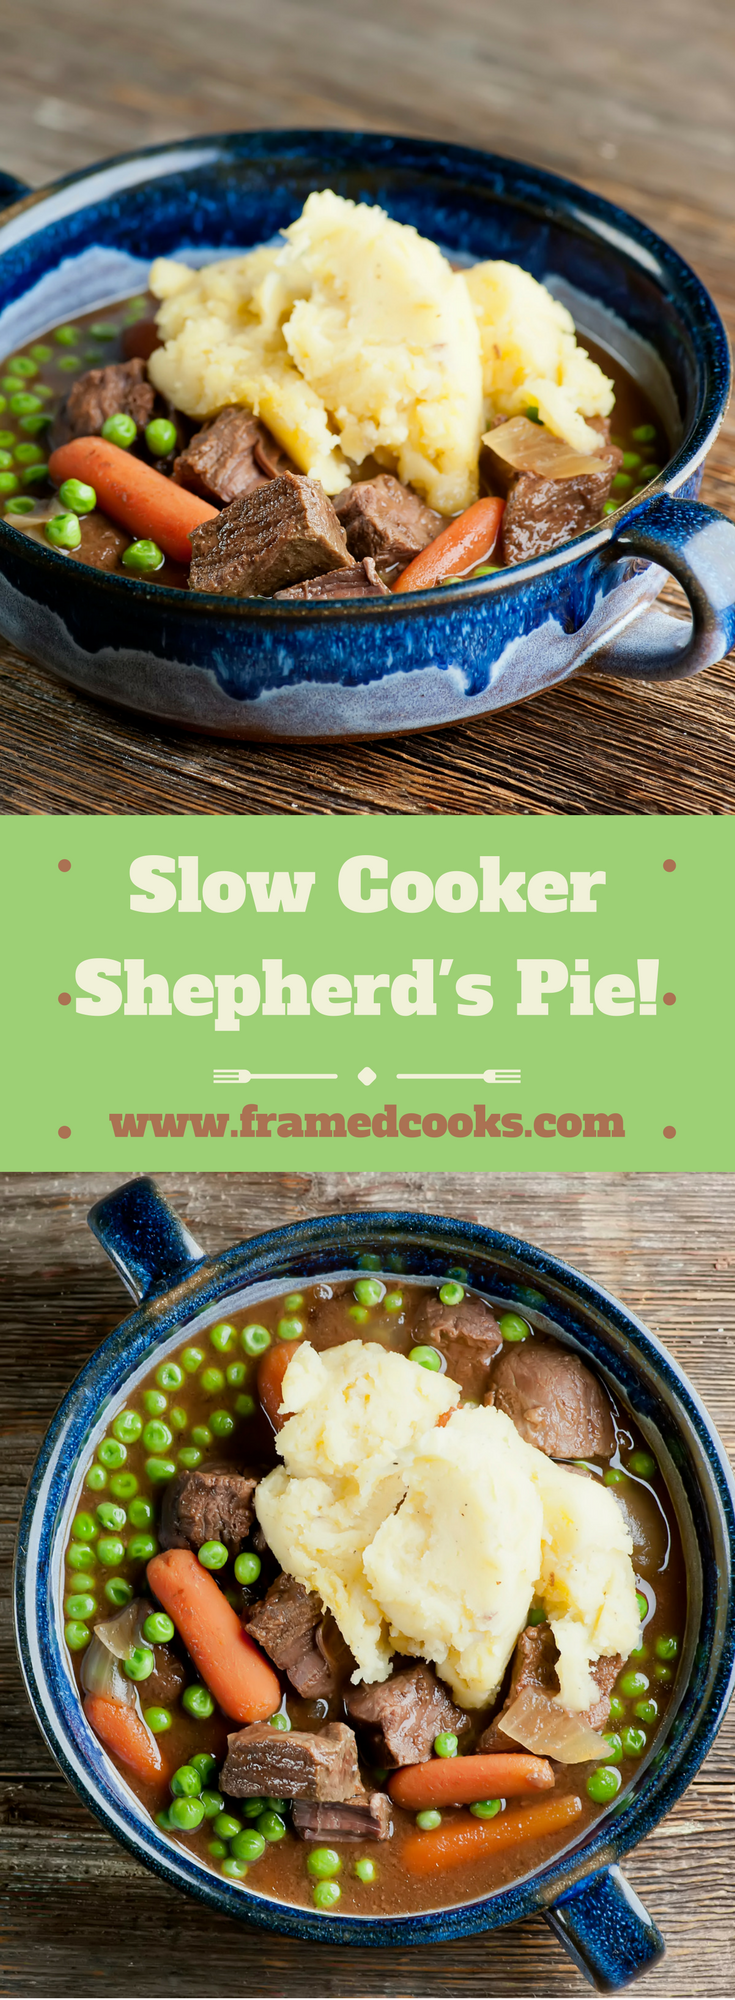 Shepherd's pie, your favorite comfort food, comes to your slow cooker with this easy recipe!